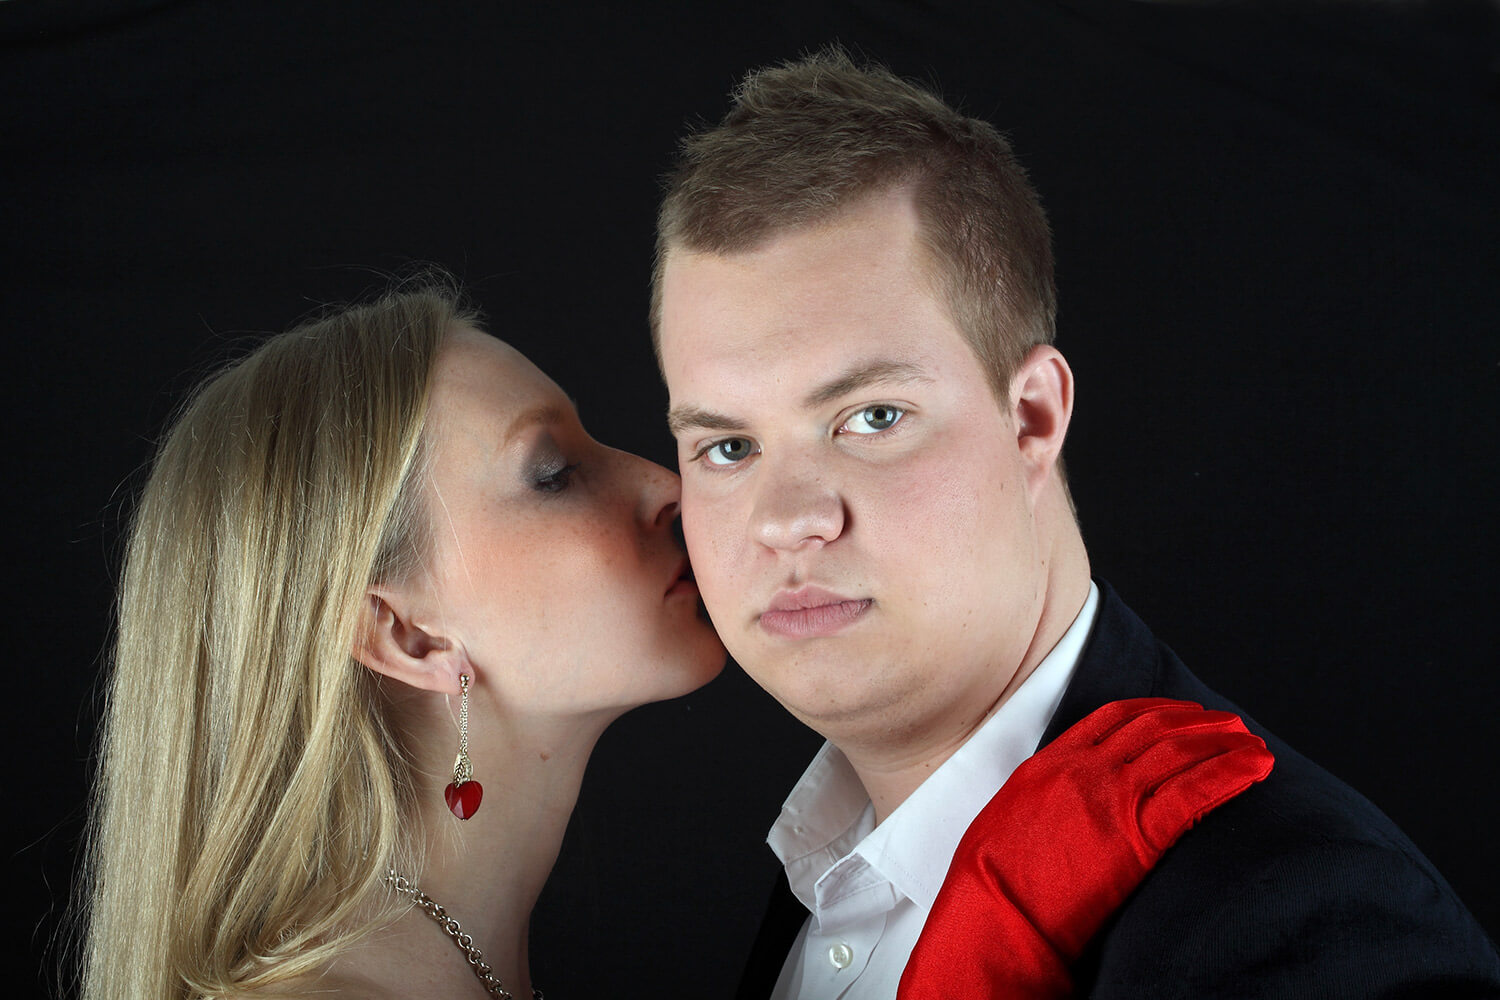 couple photo of a woman with red gloves and a man in a jacket